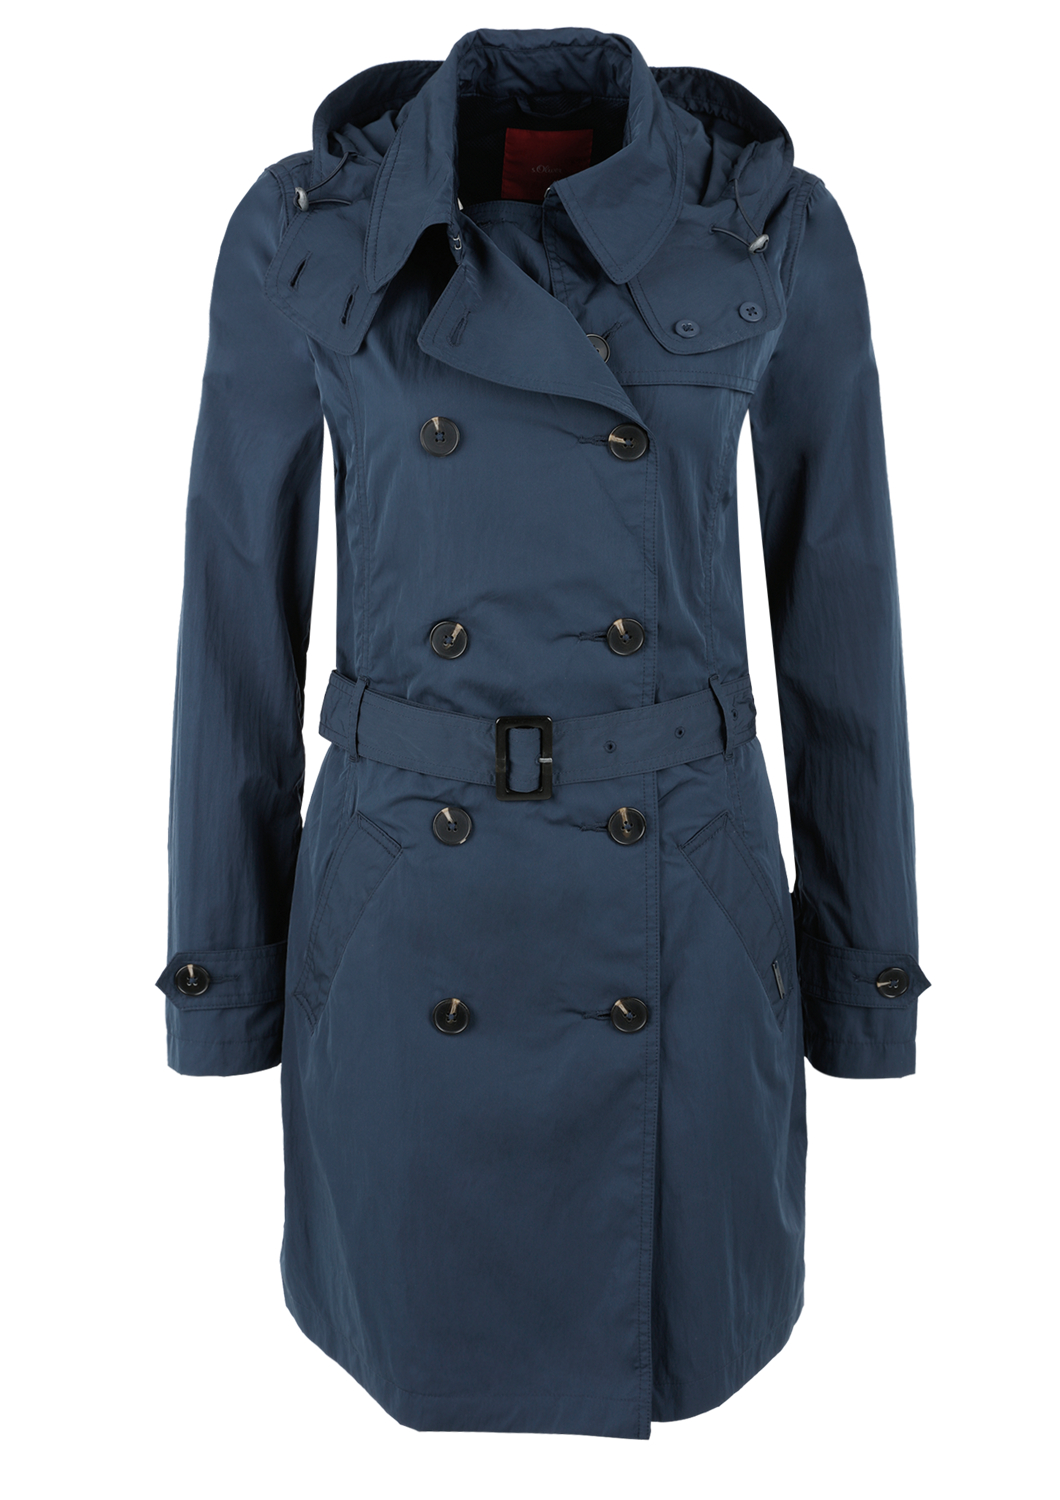 Trenchcoat | Bekleidung > Mäntel > Trenchcoats | Blau | Obermaterial 56% polyester -  44% polyamid| futter 100% polyester | s.Oliver